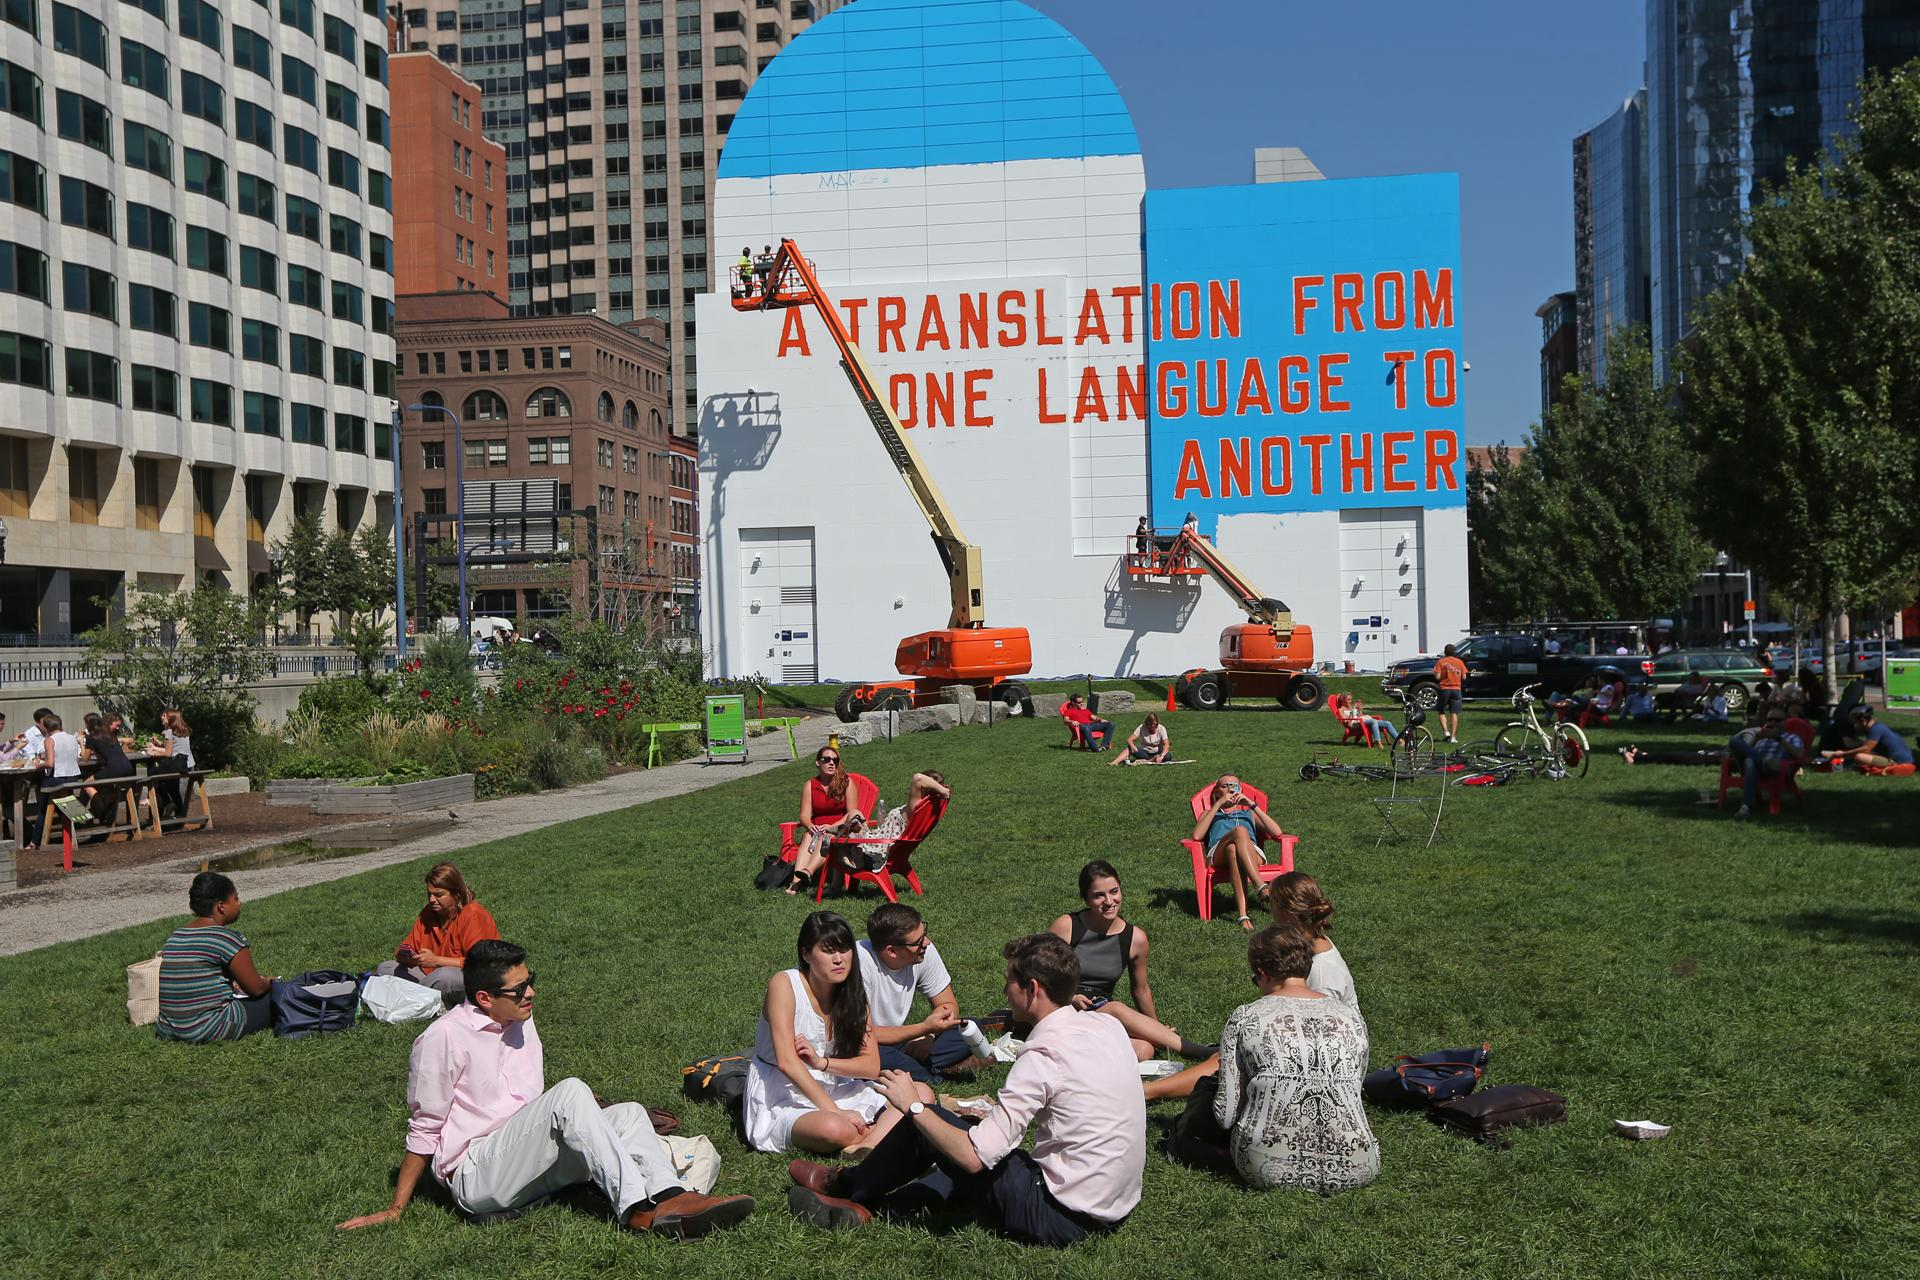 Chinese for Dewey square mural